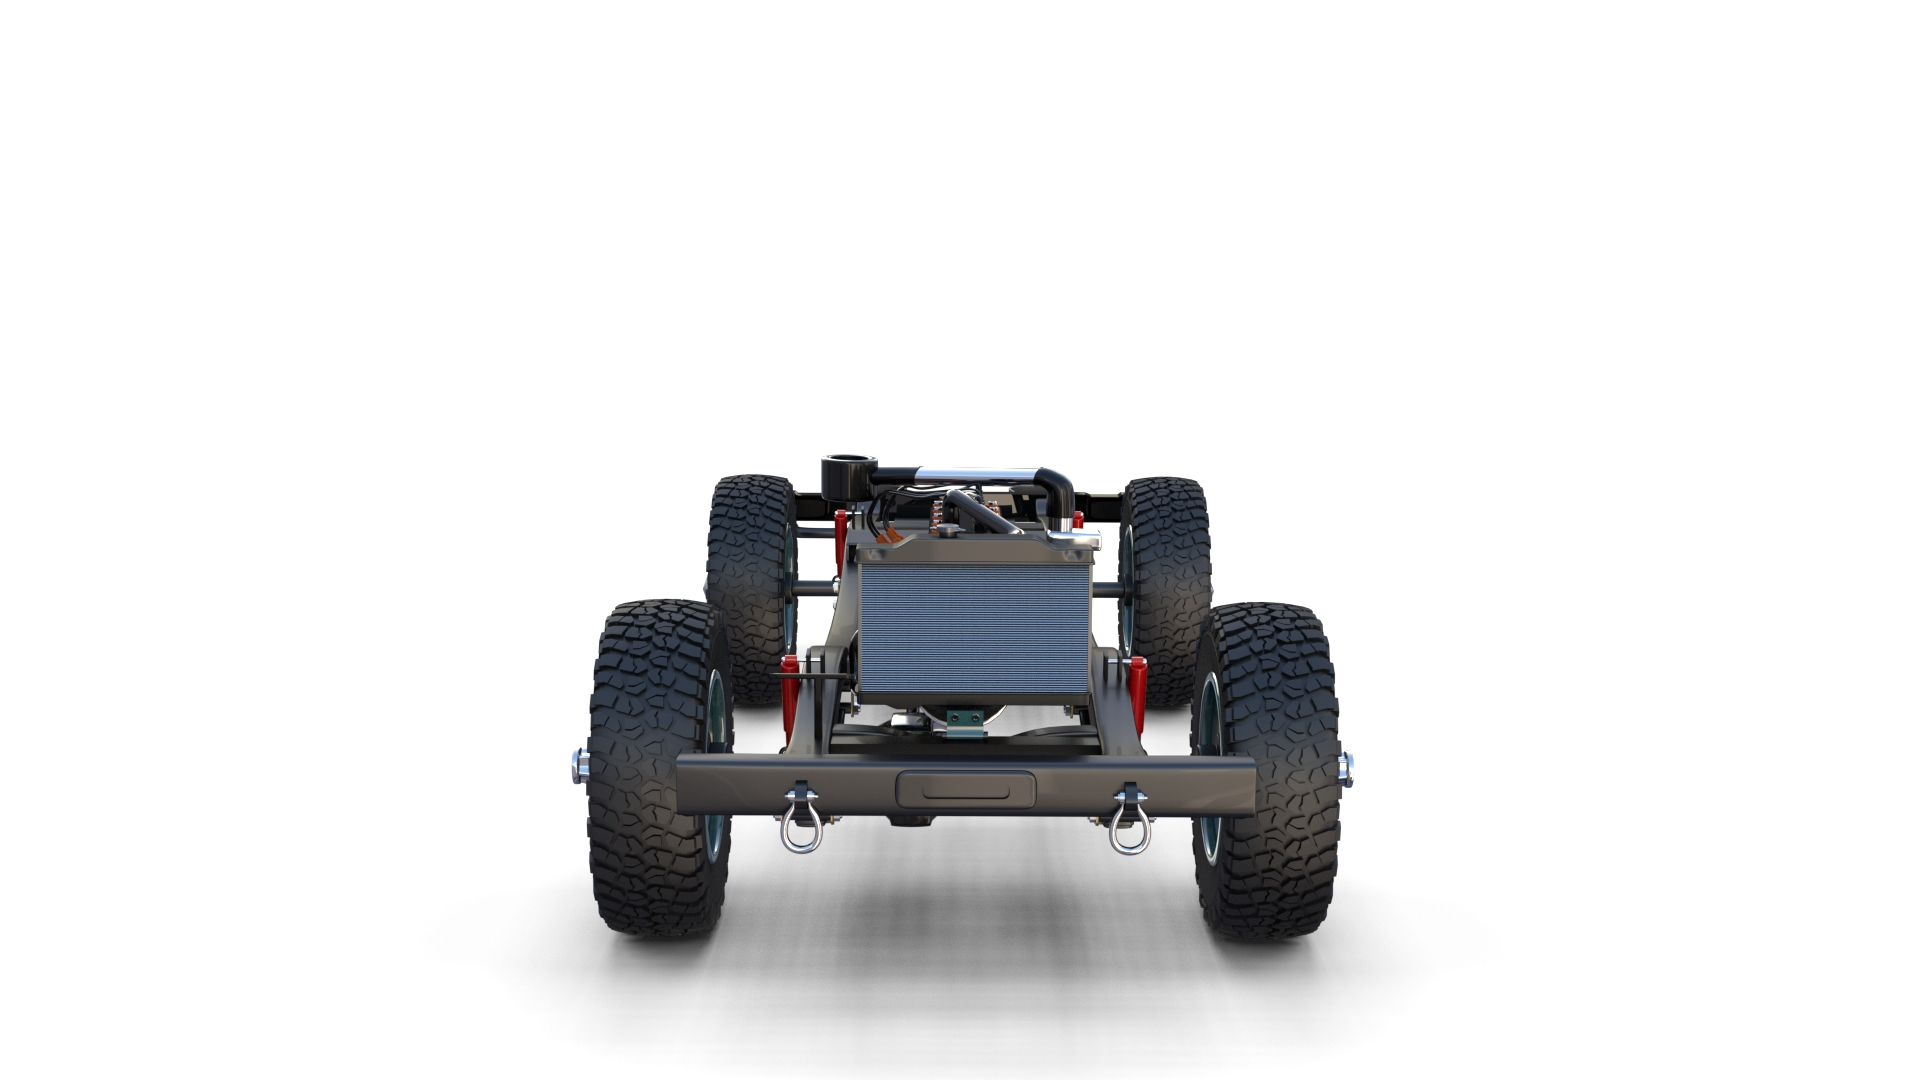 Full Offroad Vehicle Chassis